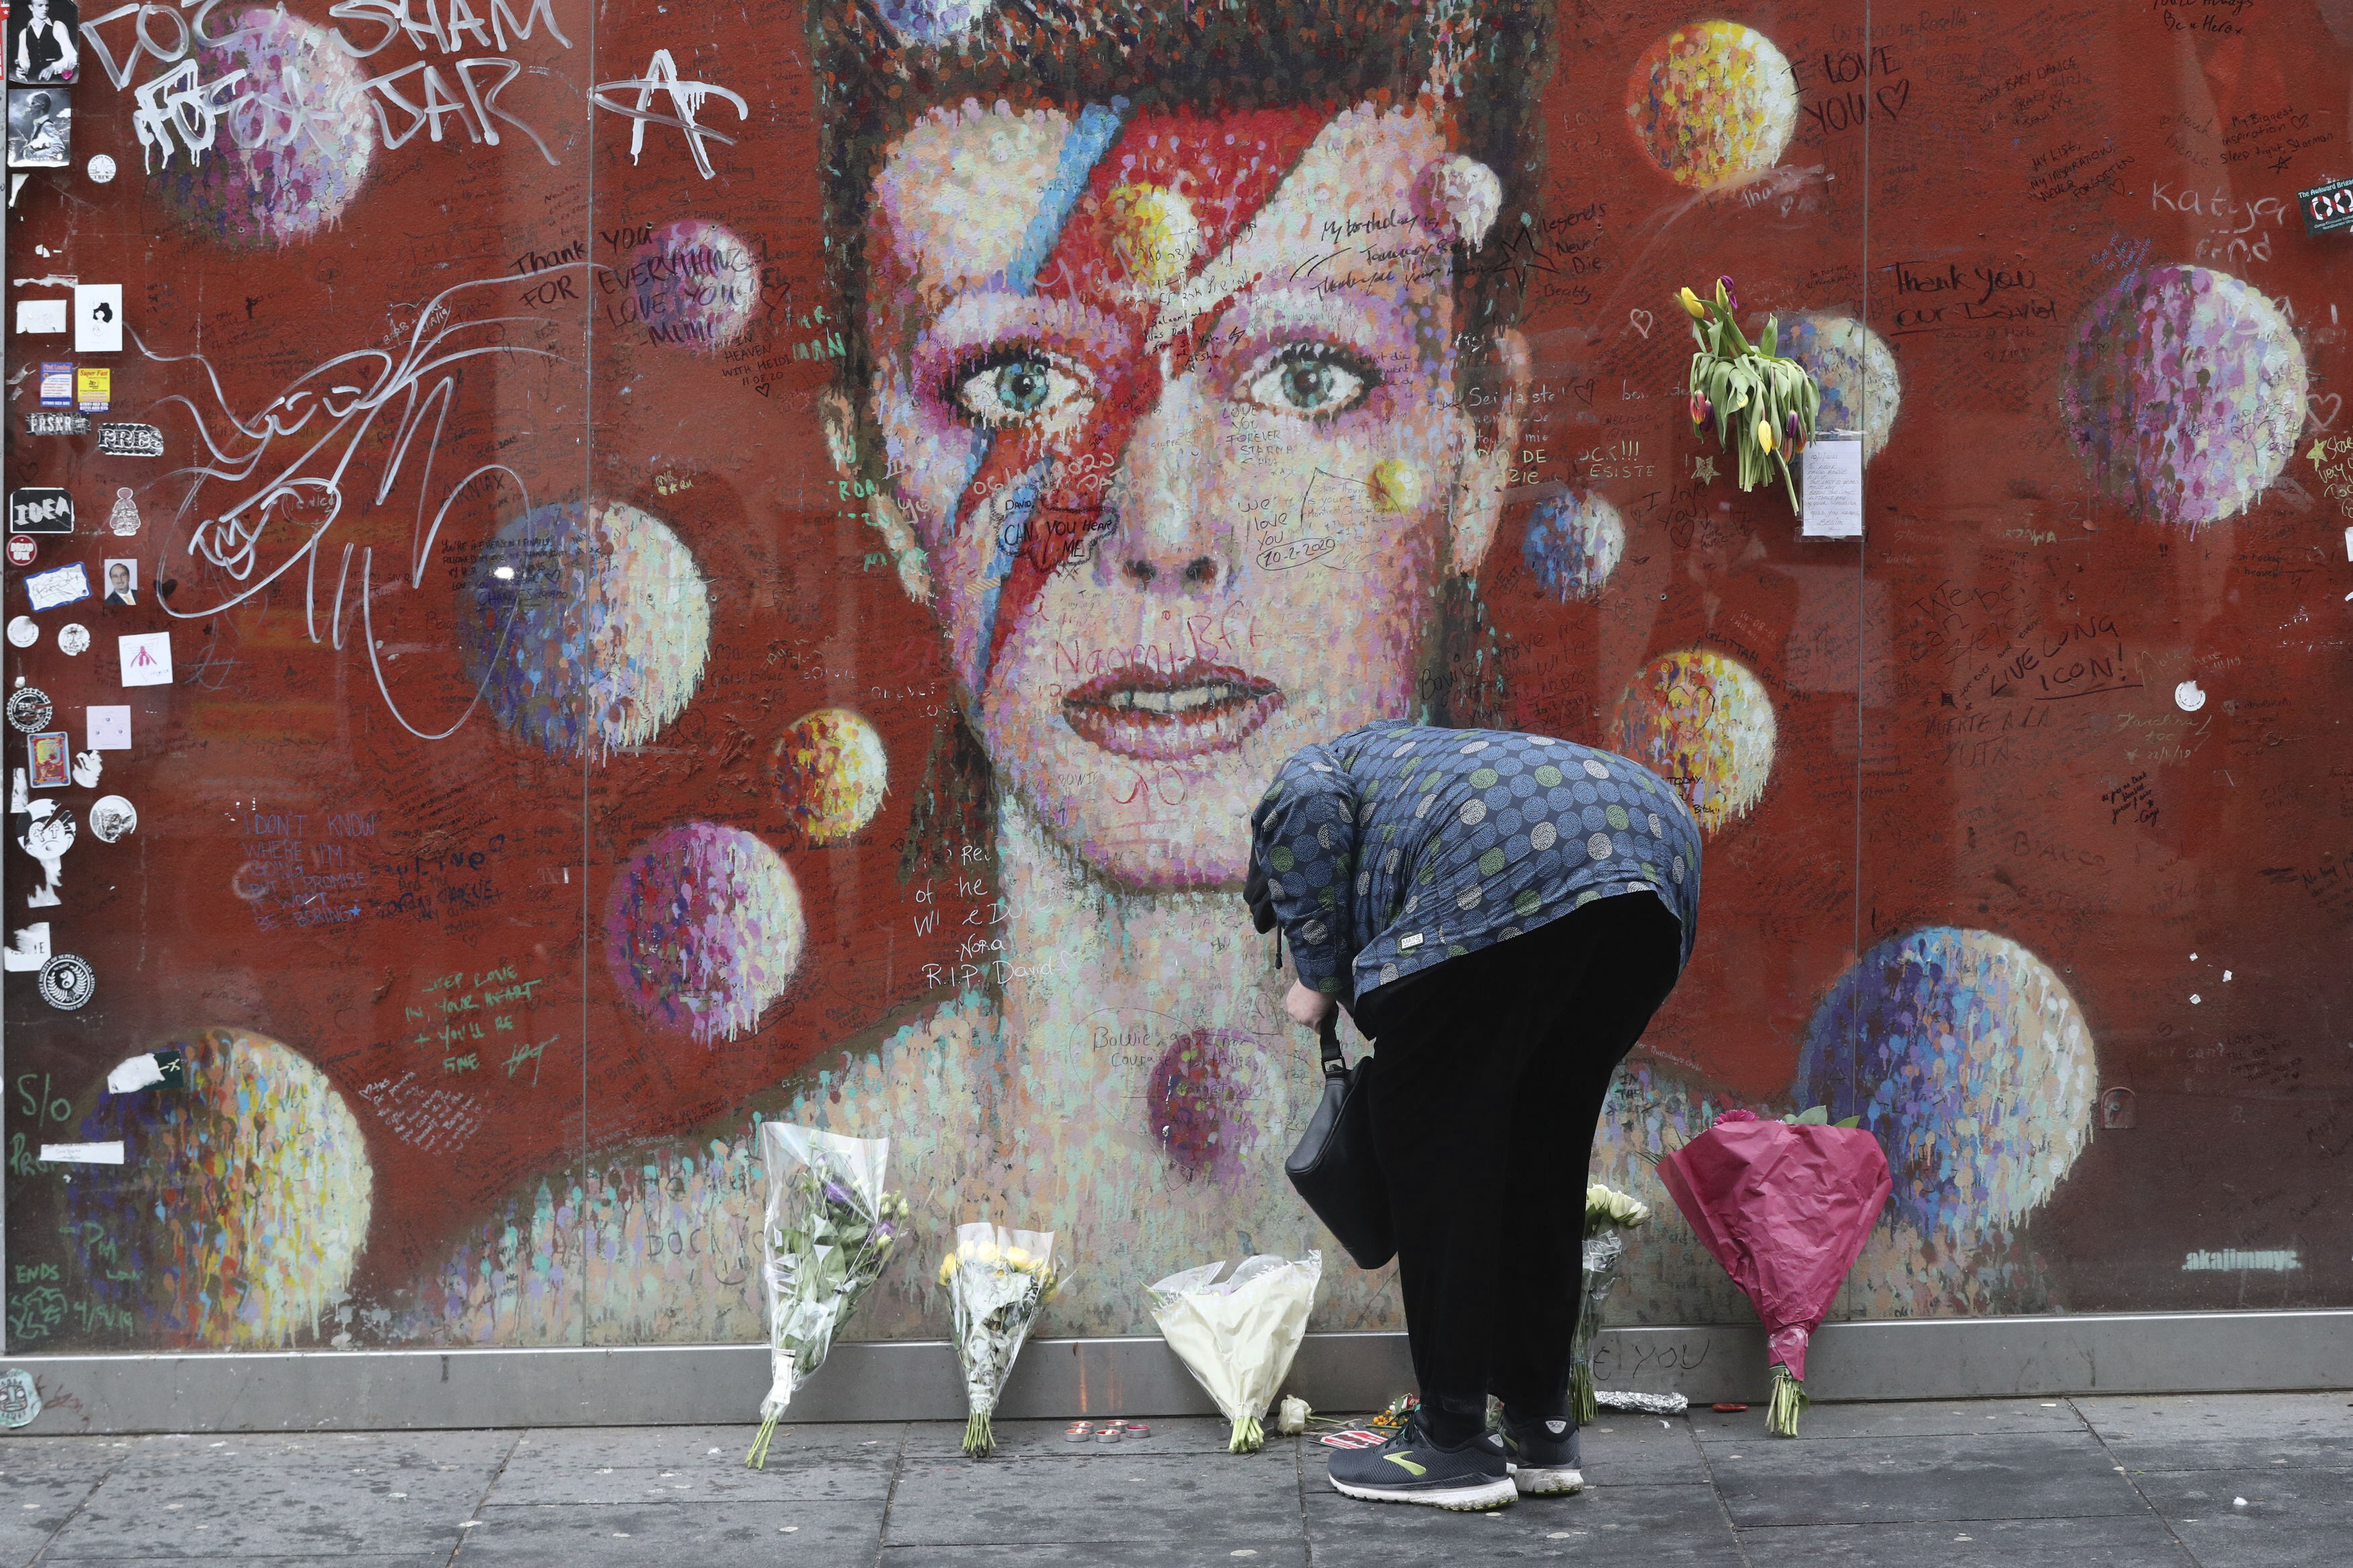 A woman lays a floral tribute at the David Bowie mural in Brixton, south London on the fifth anniversary of the singer's death, Sunday Jan. 10, 2021.  The singer-songwriter Bowie died of liver cancer at his home in New York, USA, on 10 January 2016. (Jonathan Brady/PA via AP)